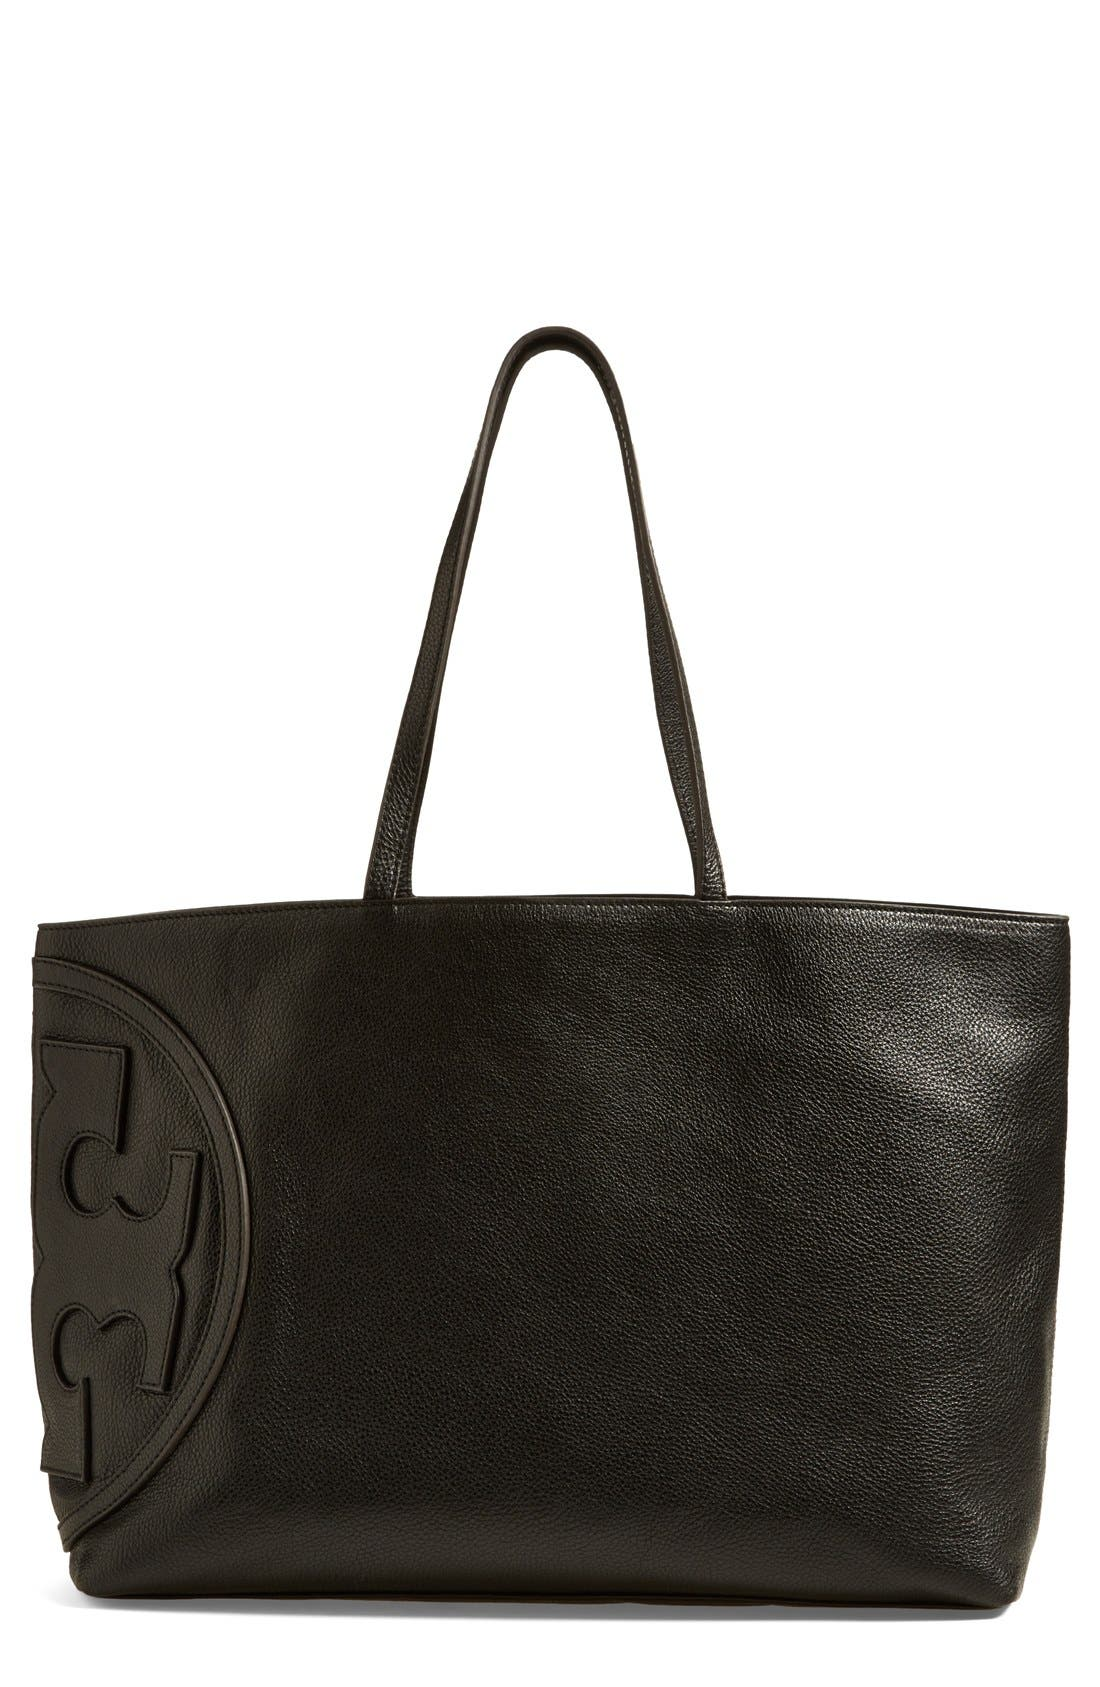 'All T' East/West Tote, Main, color, 001